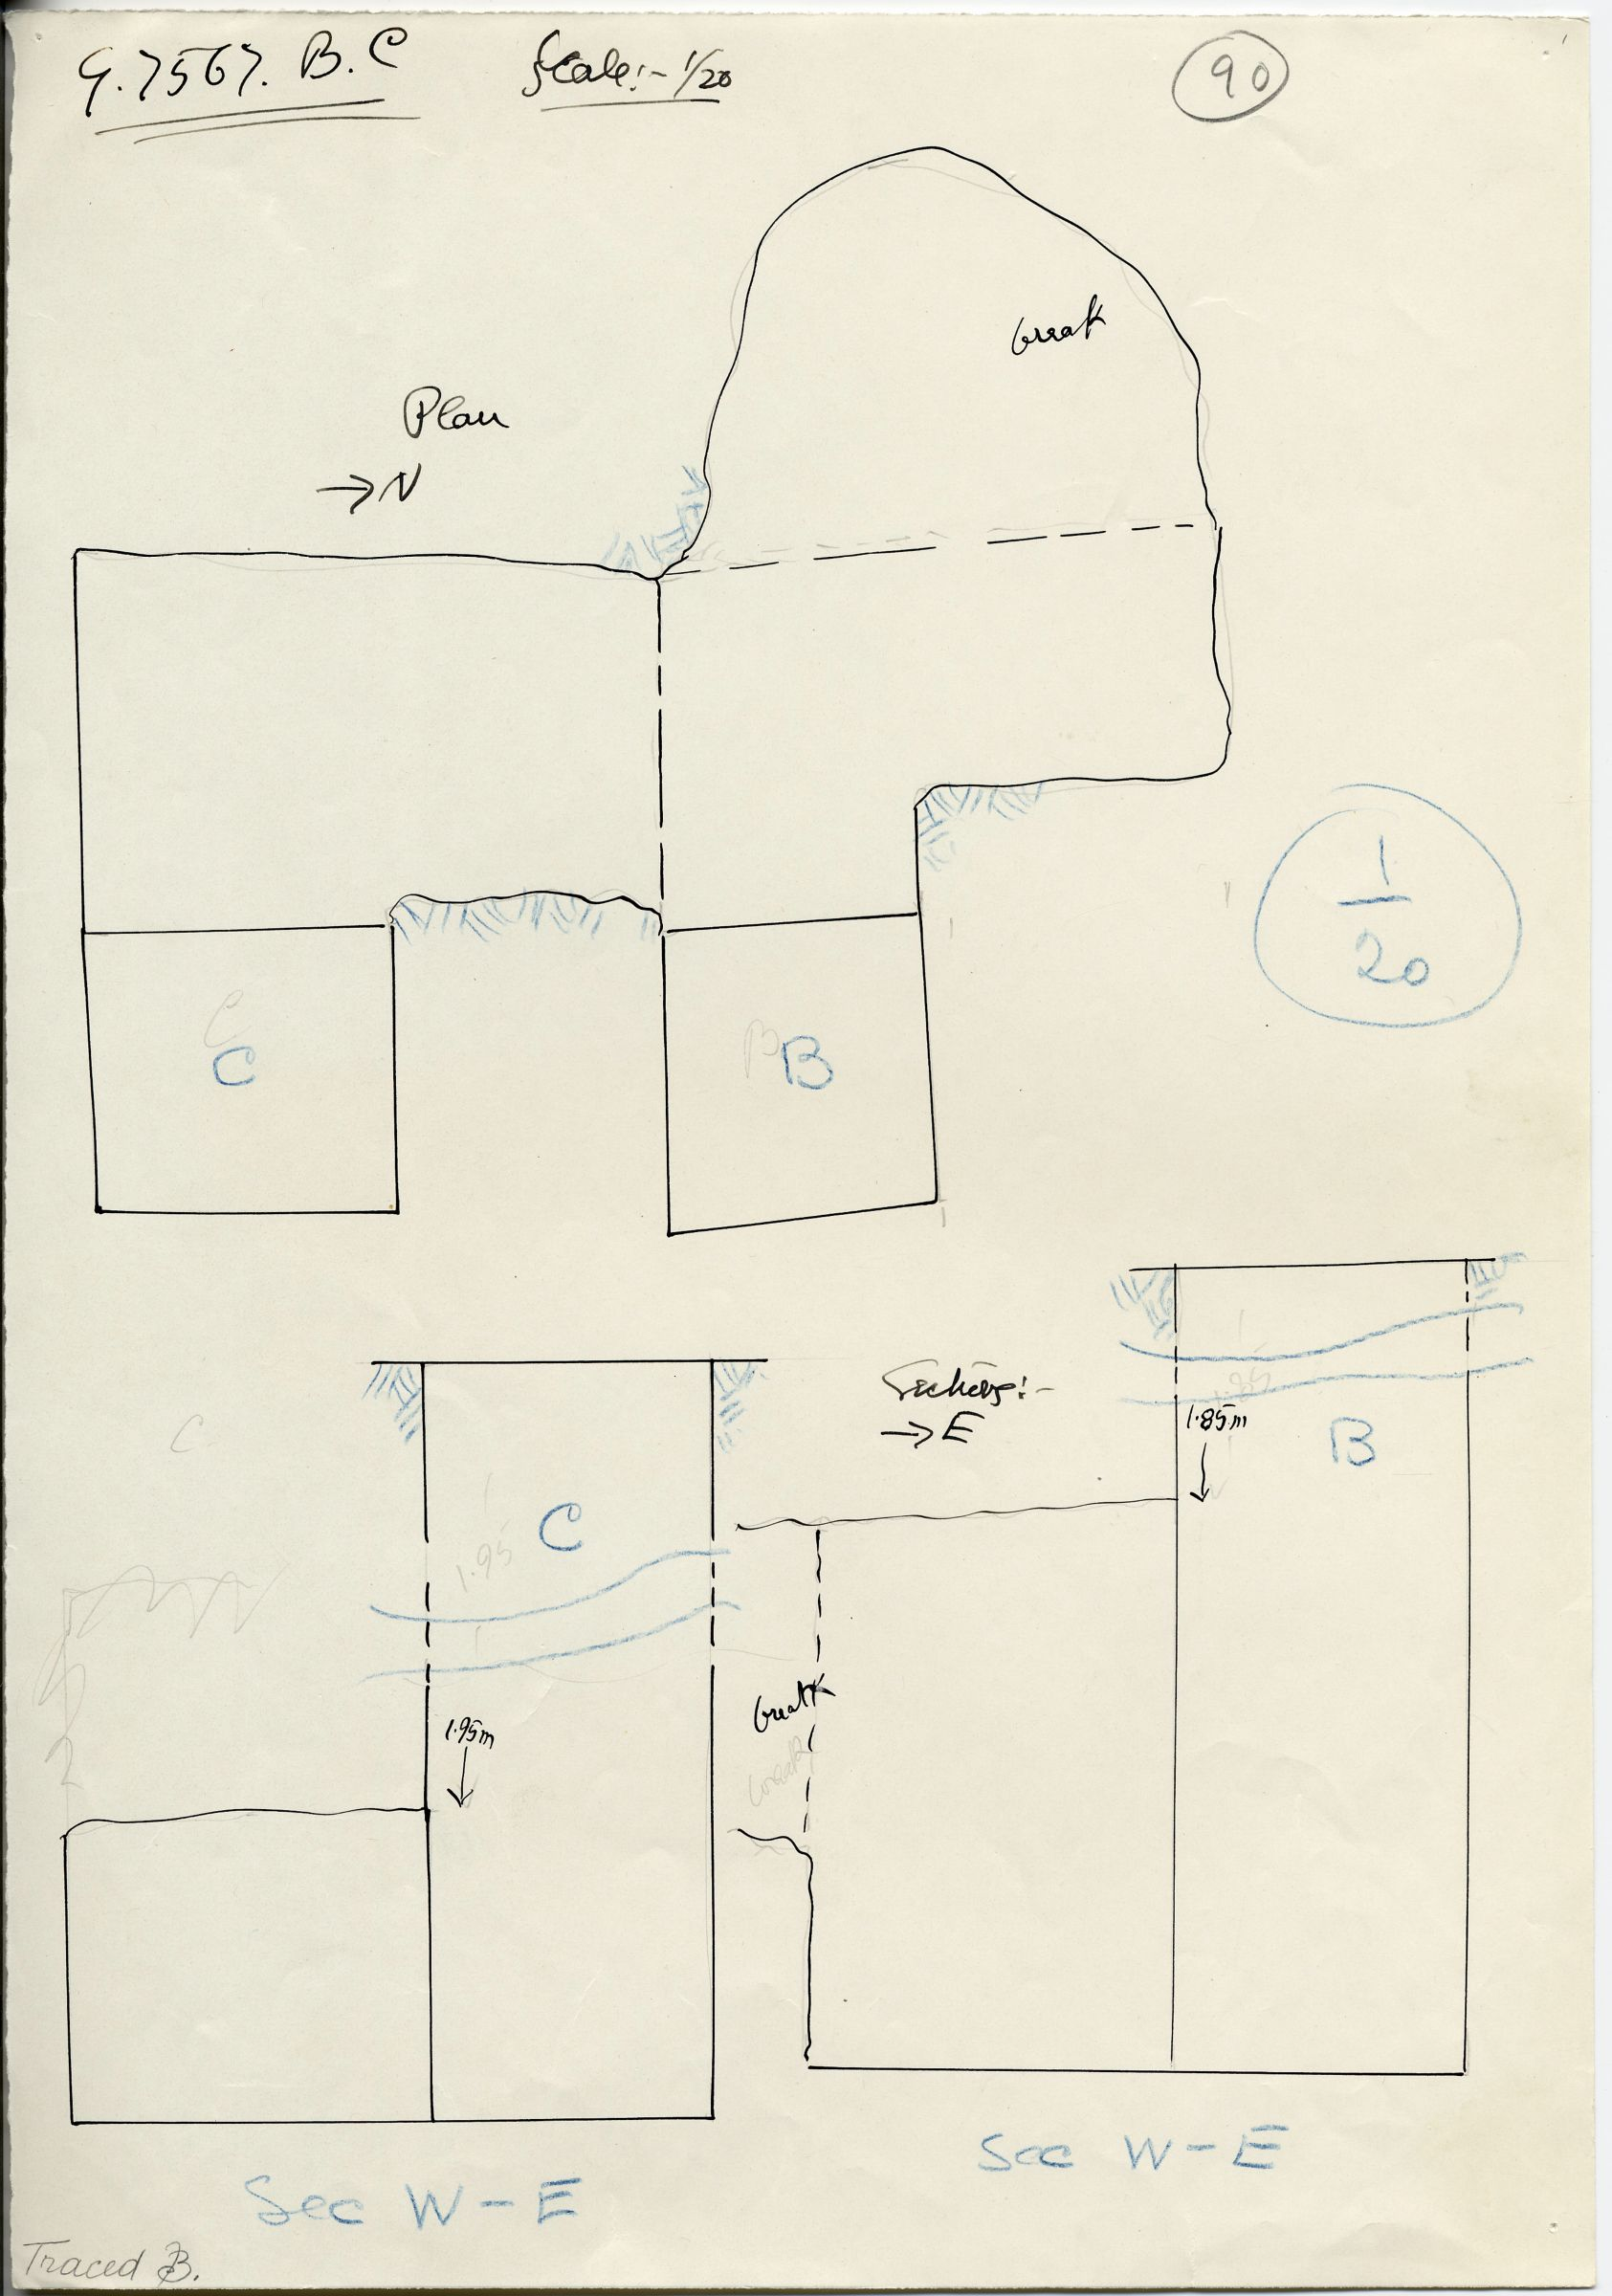 Maps and plans: G 7567, Shaft B and C